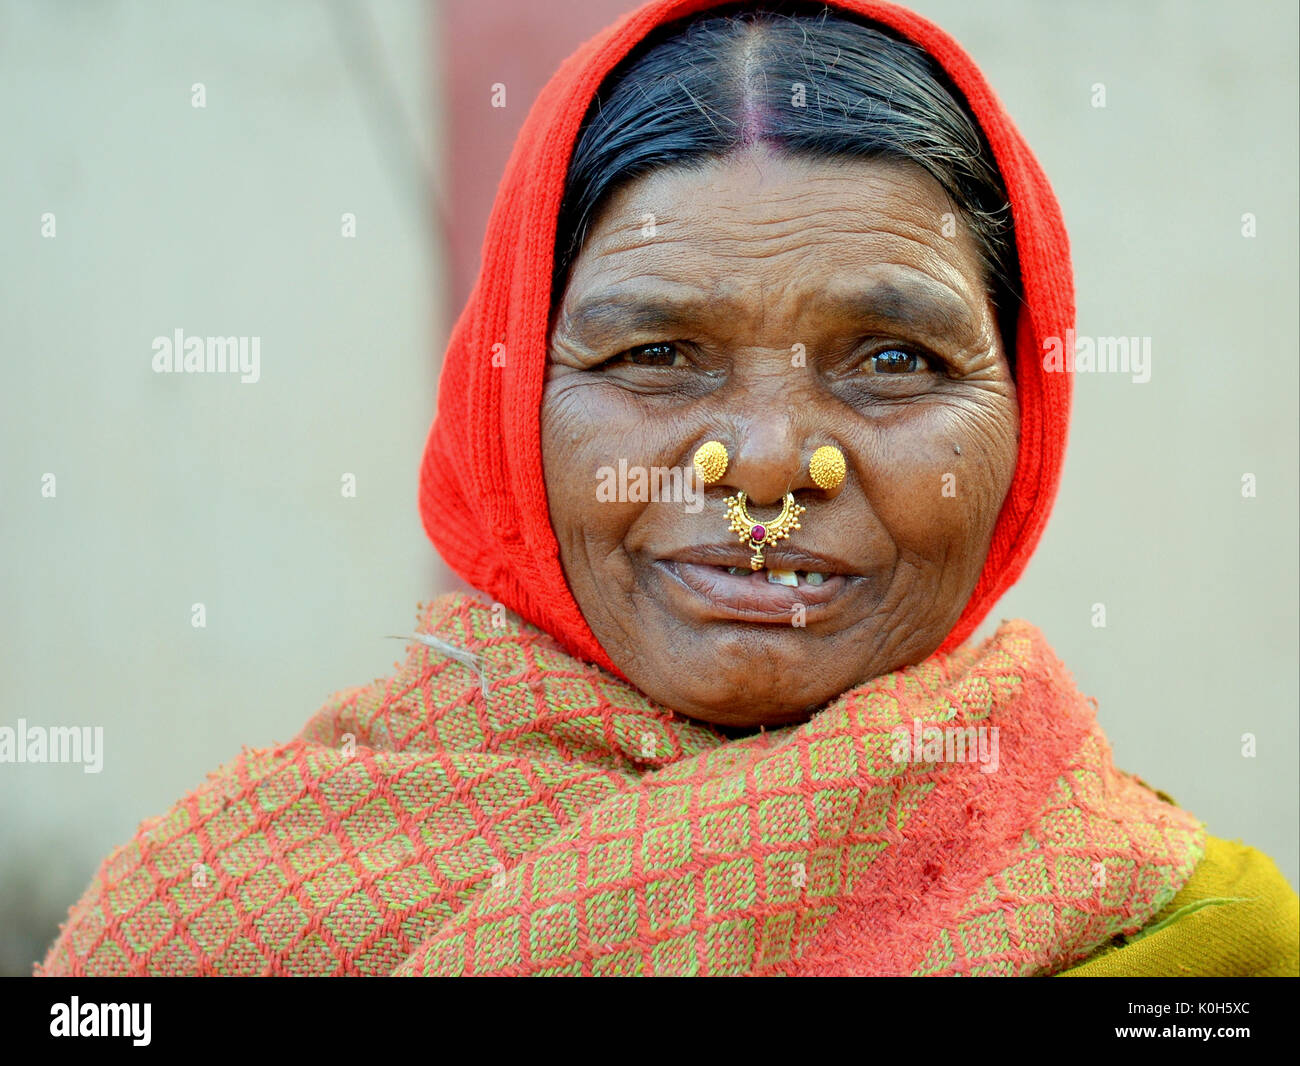 Elderly Indian Adivasi market woman with two golden nose studs and distinctive gold-and-gemstone nose jewellery, - Stock Image